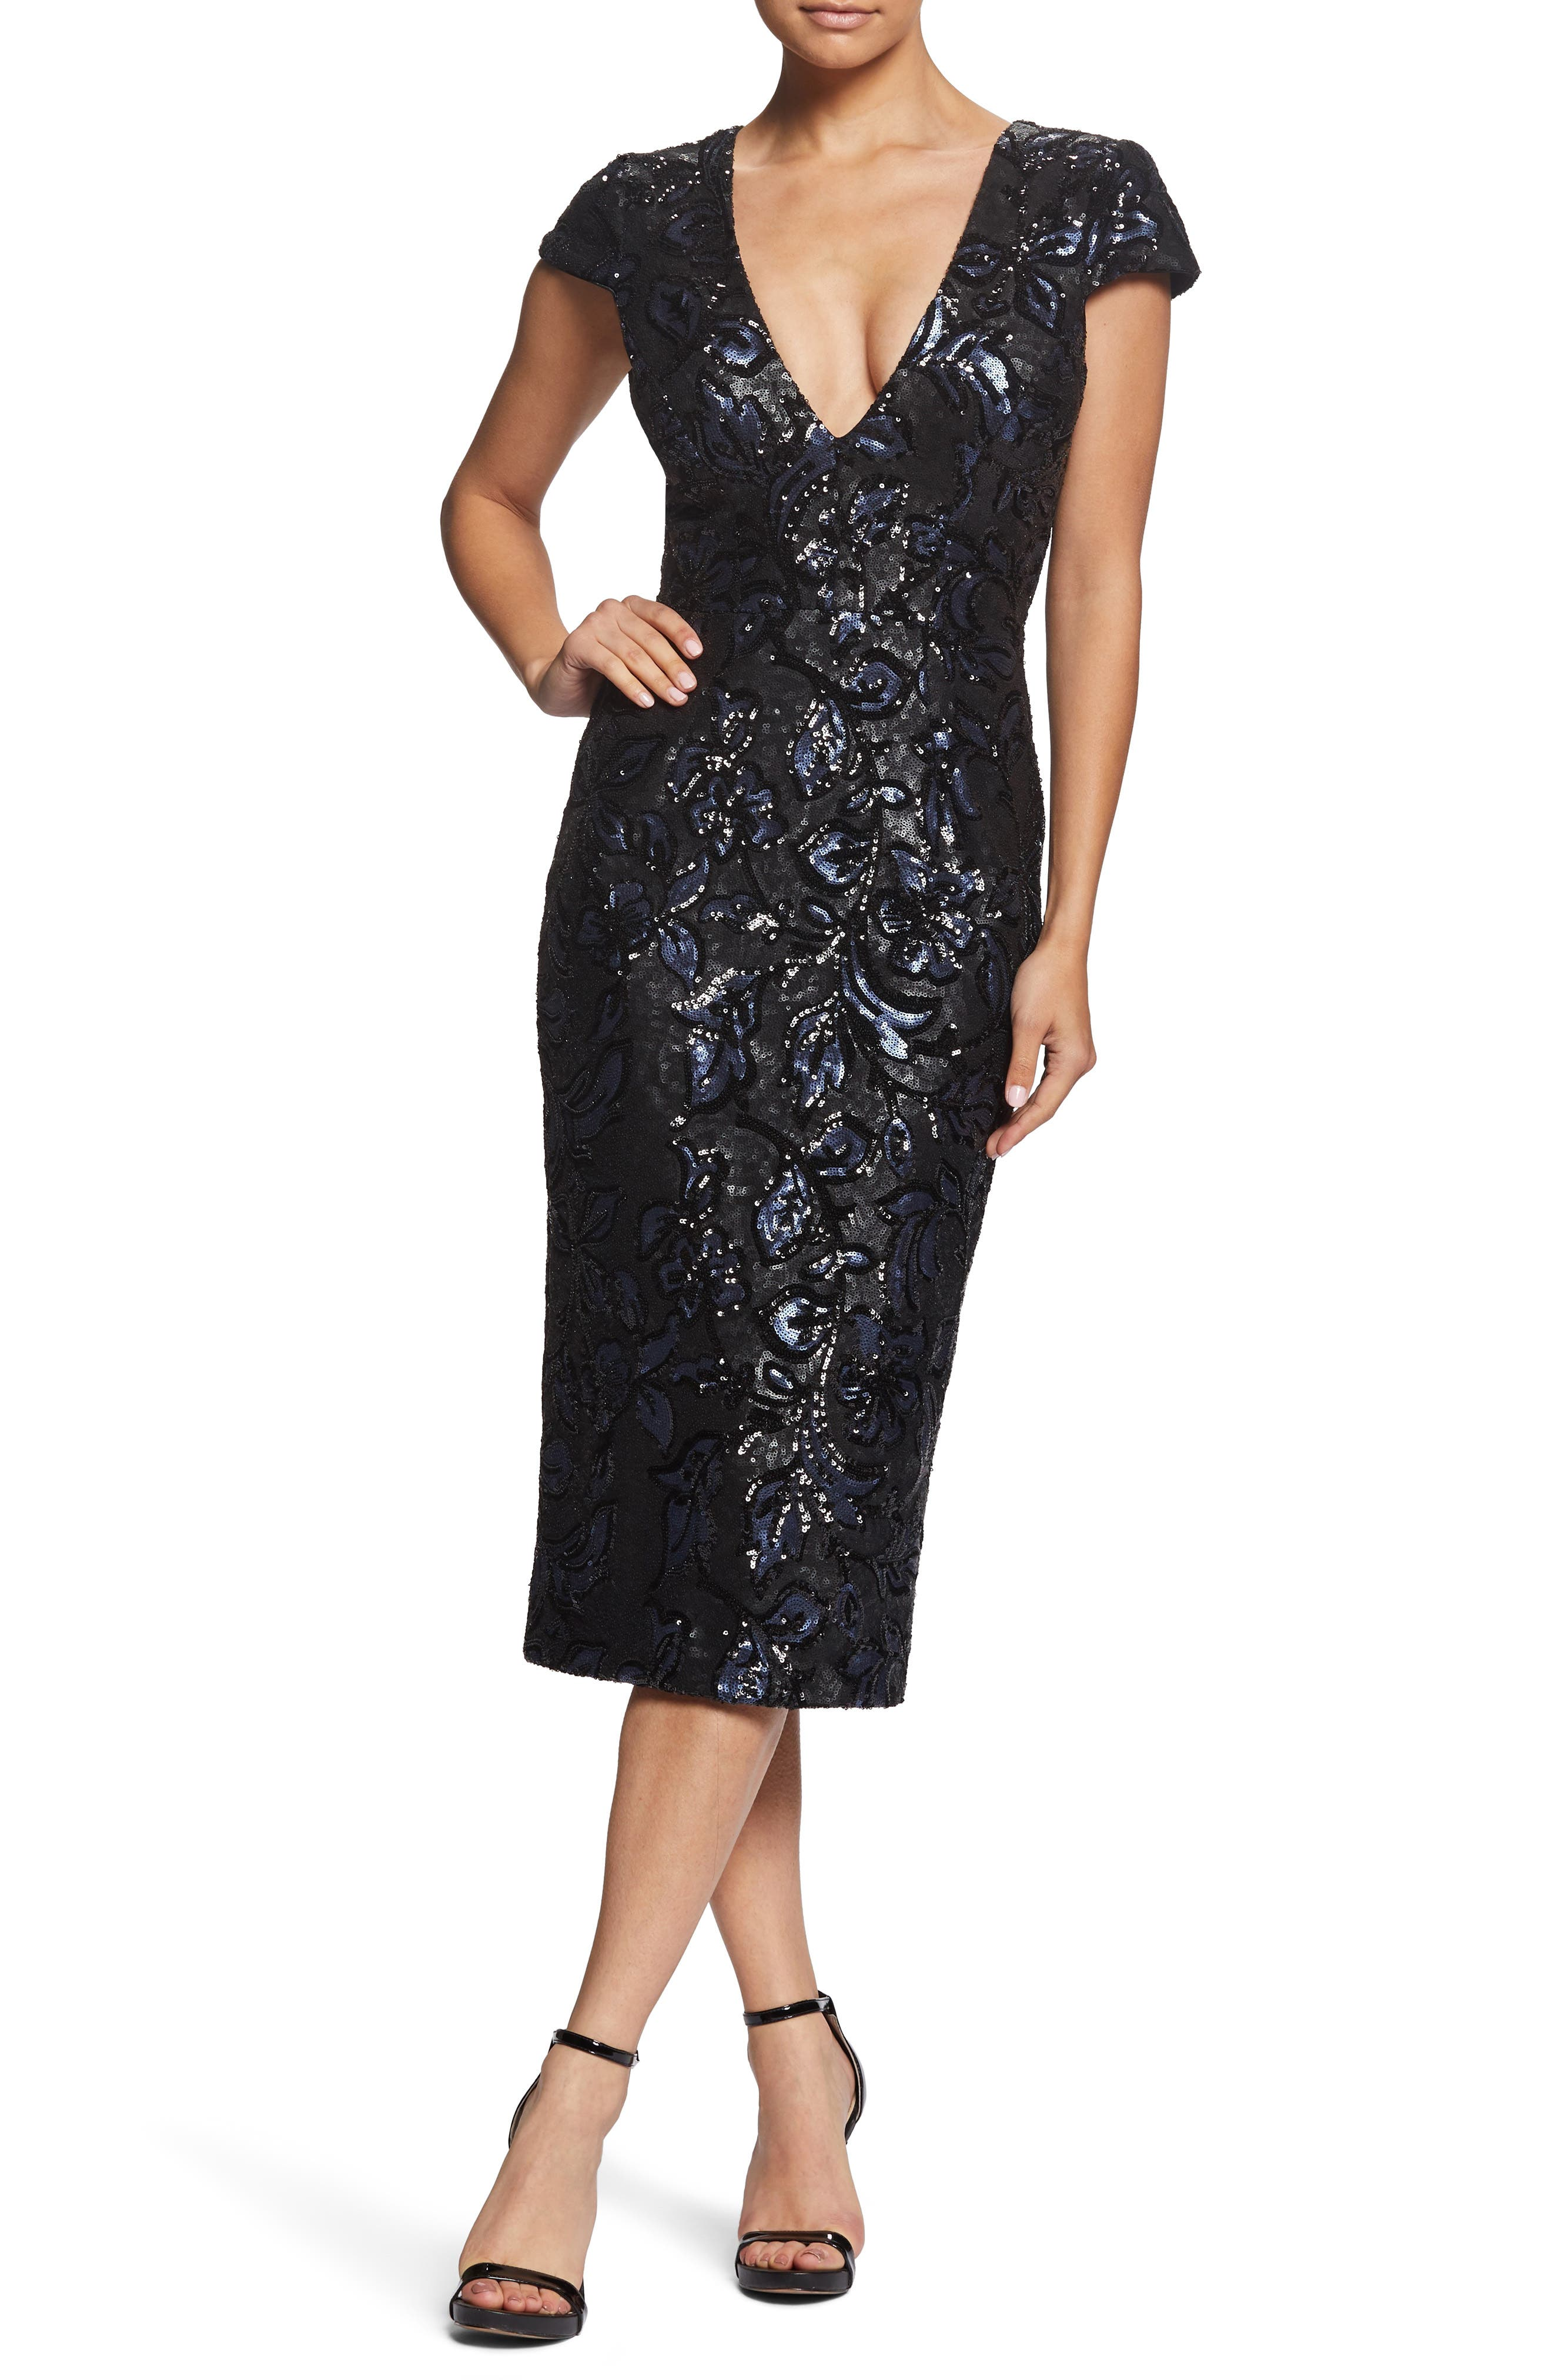 DRESS THE POPULATION, Allison Sequin Brocade Plunging V-Neck Cocktail Sheath, Main thumbnail 1, color, BLACK/ NAVY